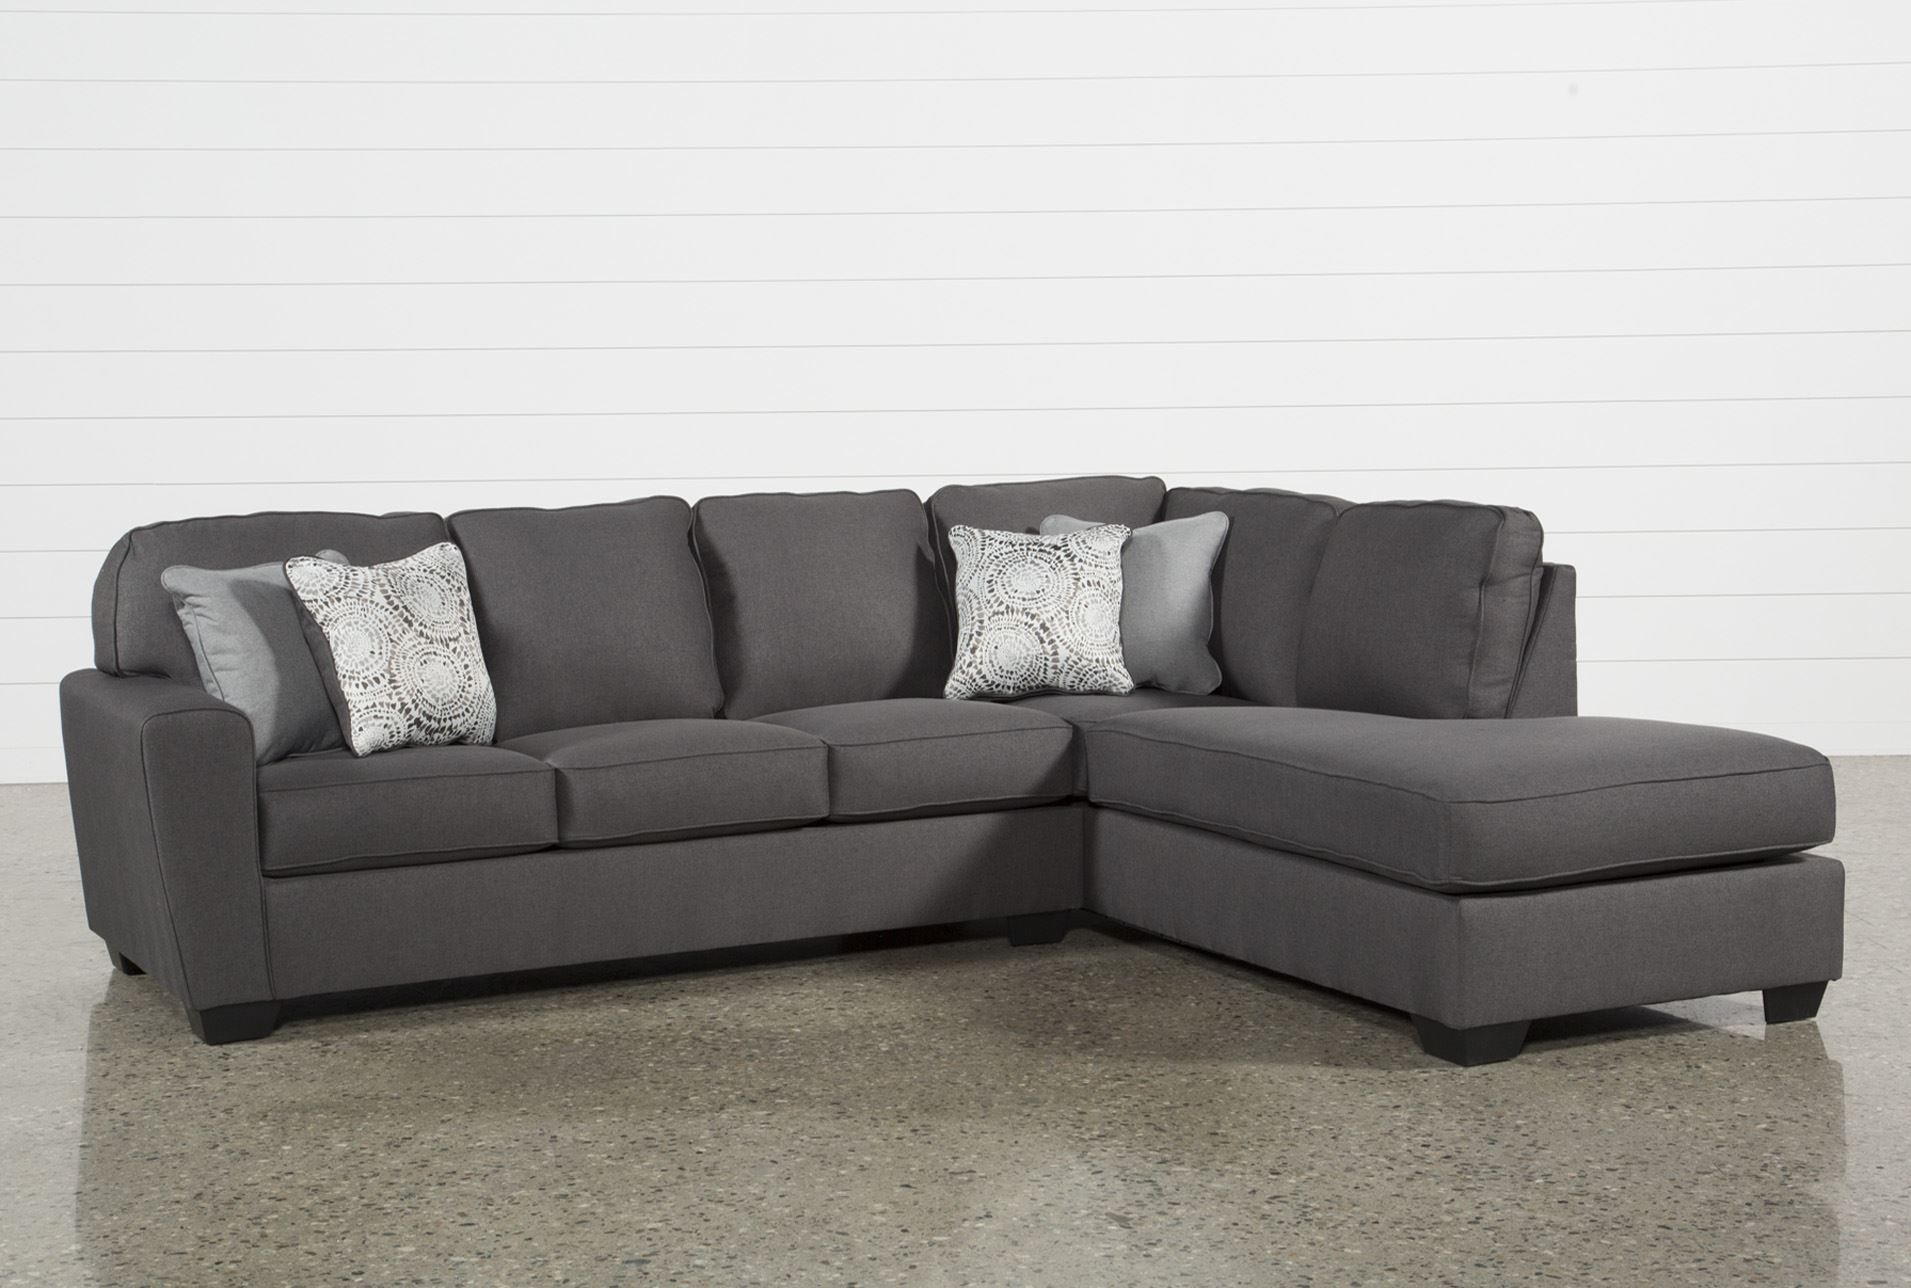 Mcdade Graphite 2 Piece Sectional W/raf Chaise | Products Within Mcculla Sofa Sectionals With Reversible Chaise (View 2 of 25)